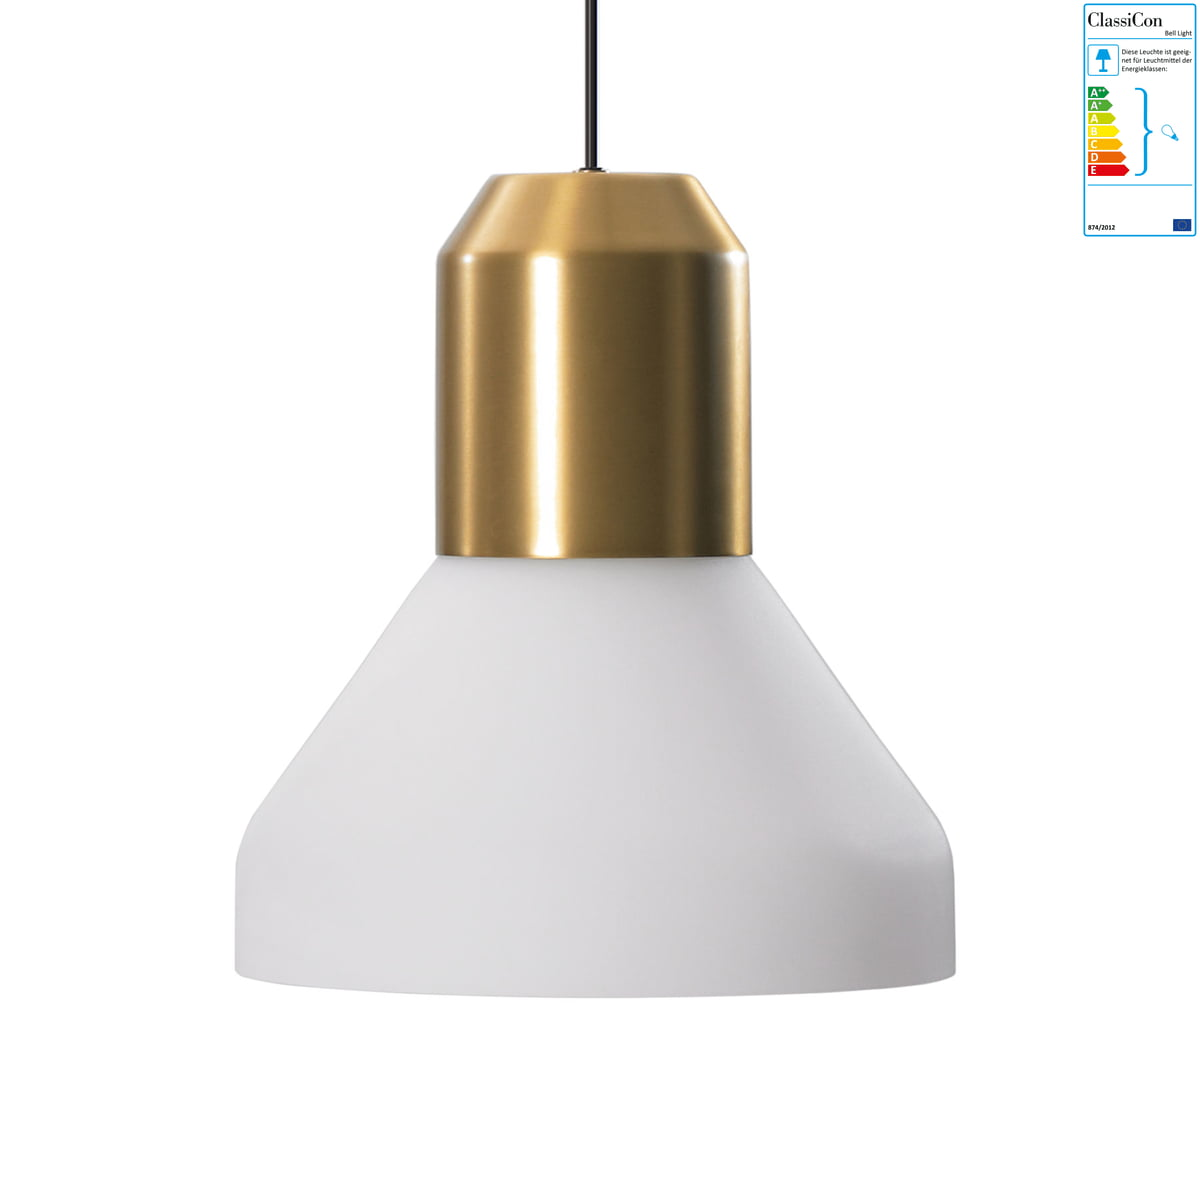 Pendelleuchten Messing Classicon Bell Light Pendelleuchte Messing Opalglas